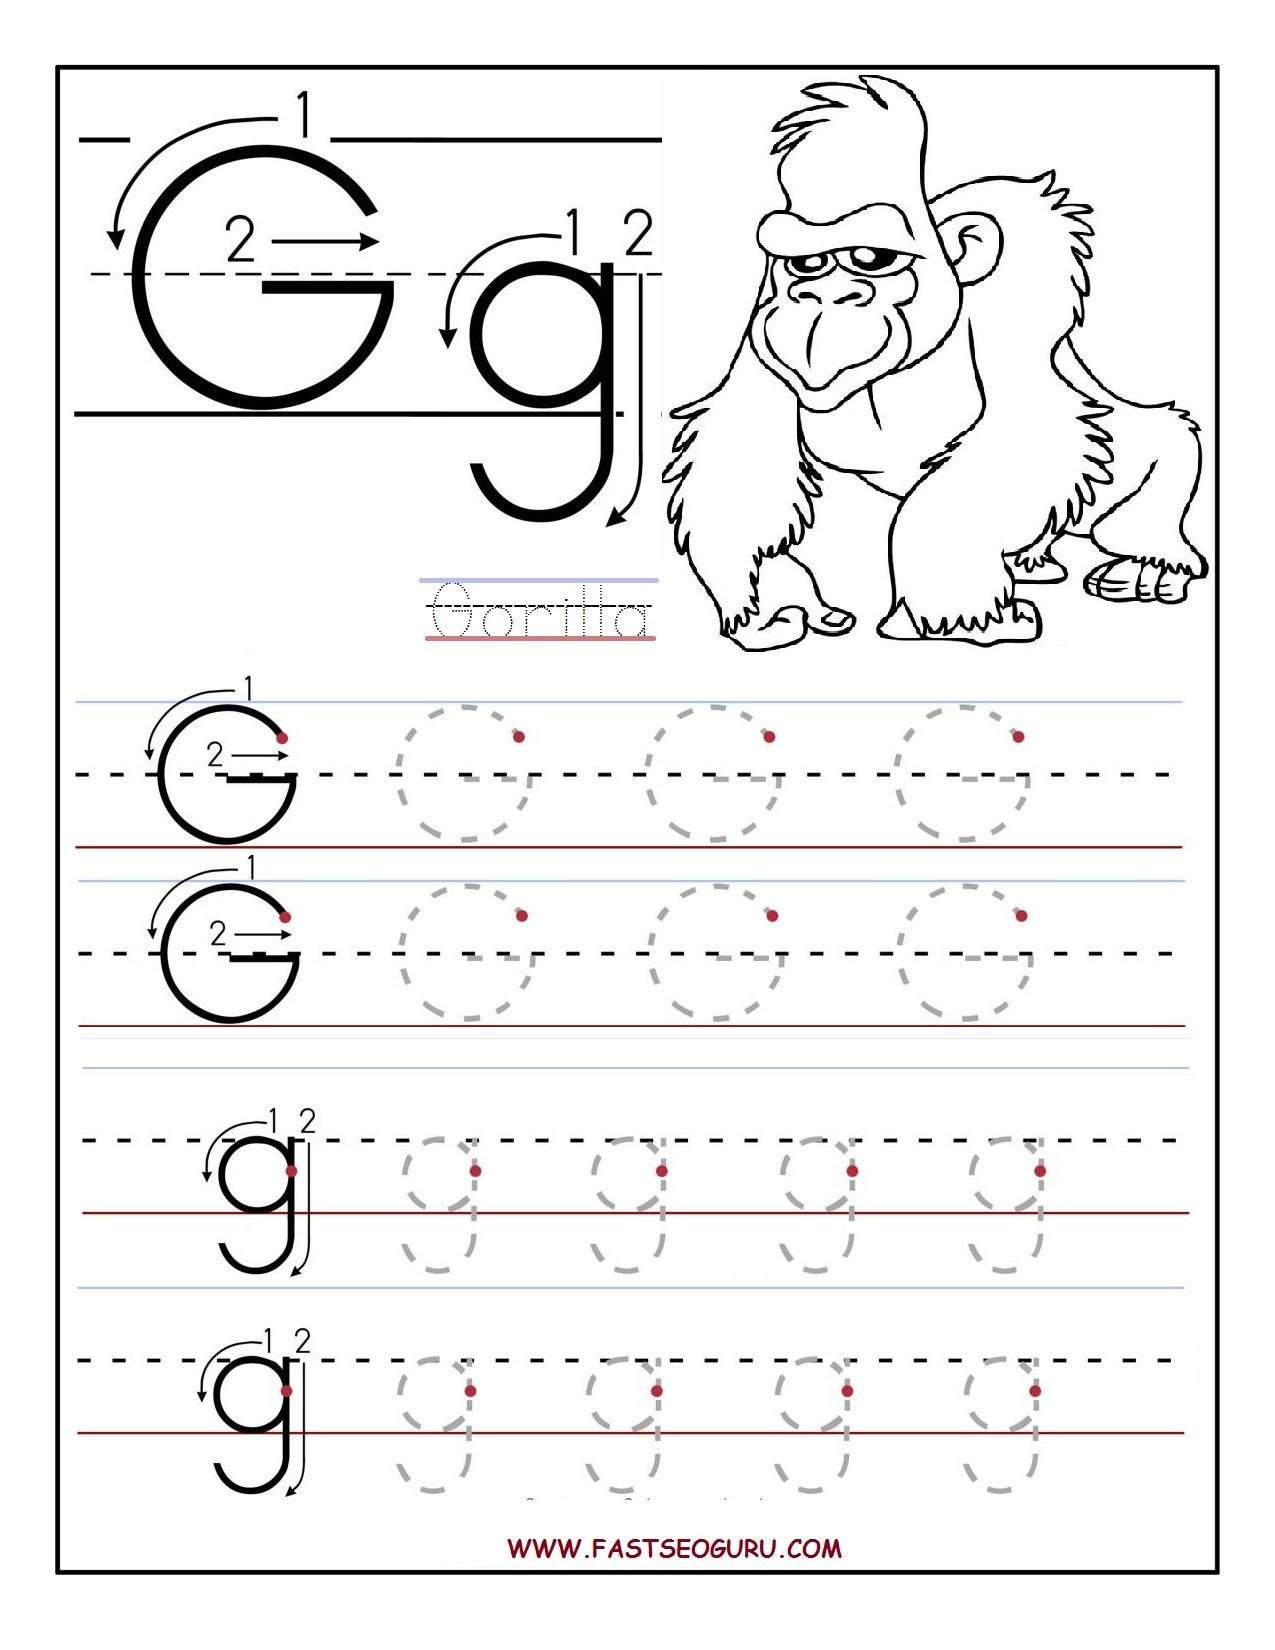 Letter G Worksheets Preschool Printable Letter G Tracing Worksheets for Preschool